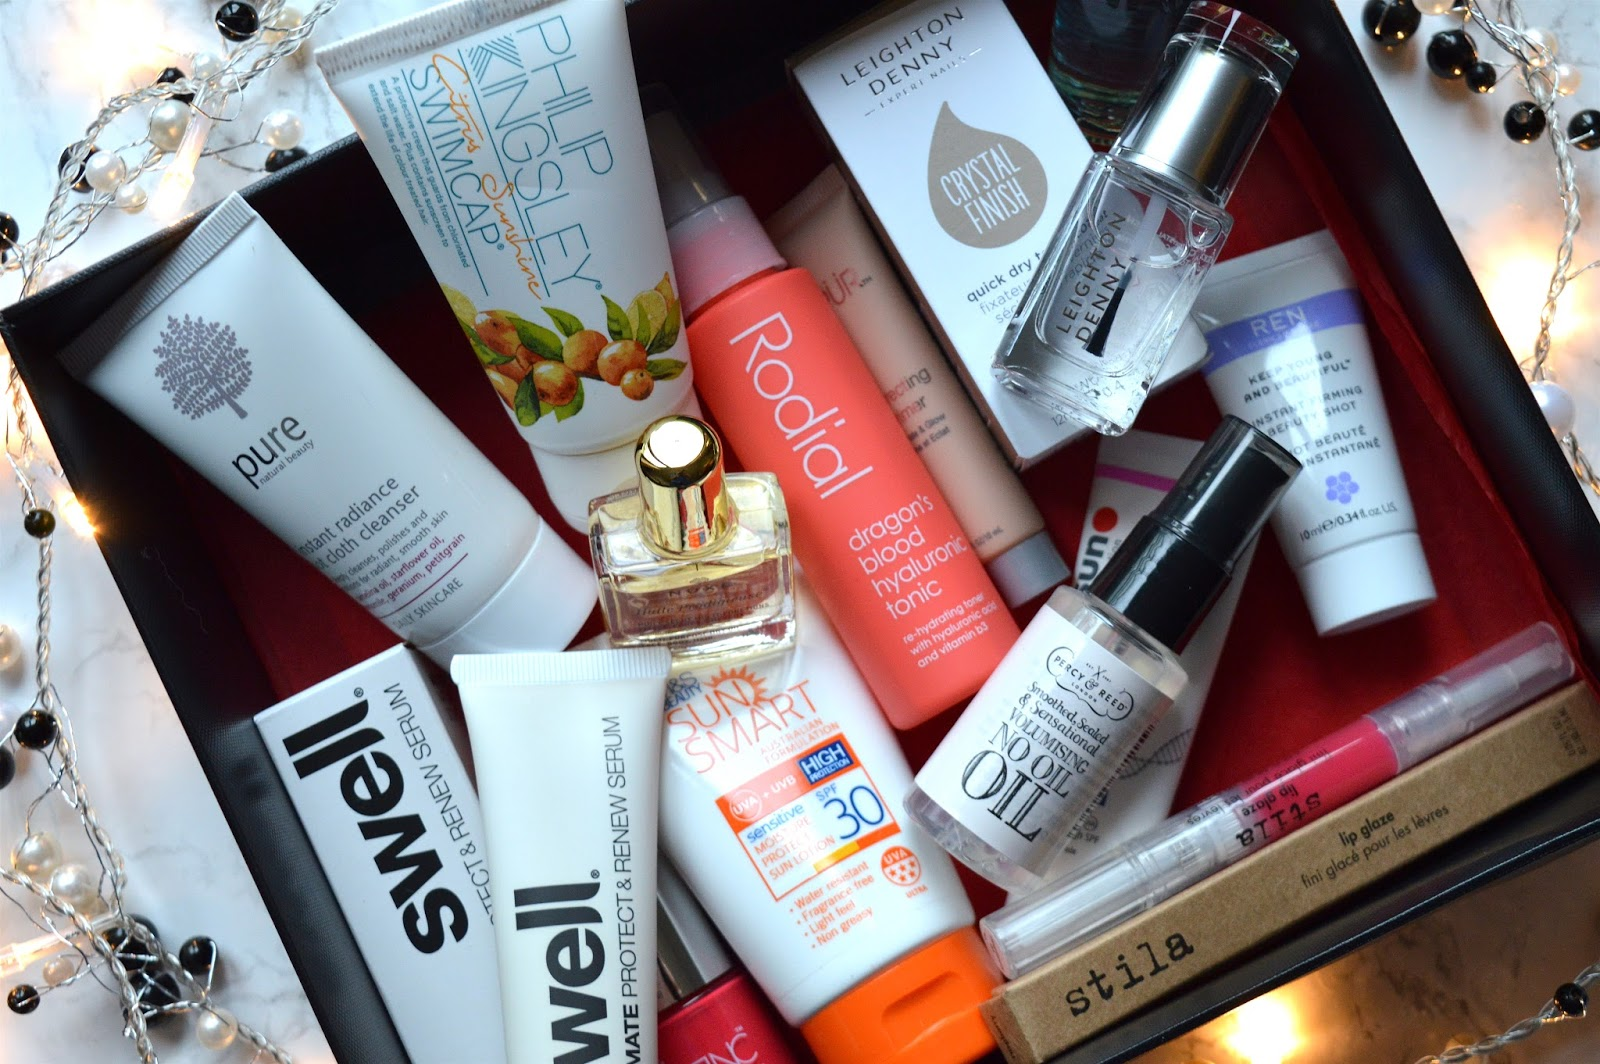 Marks & Spencer Summer Beauty Box Contents